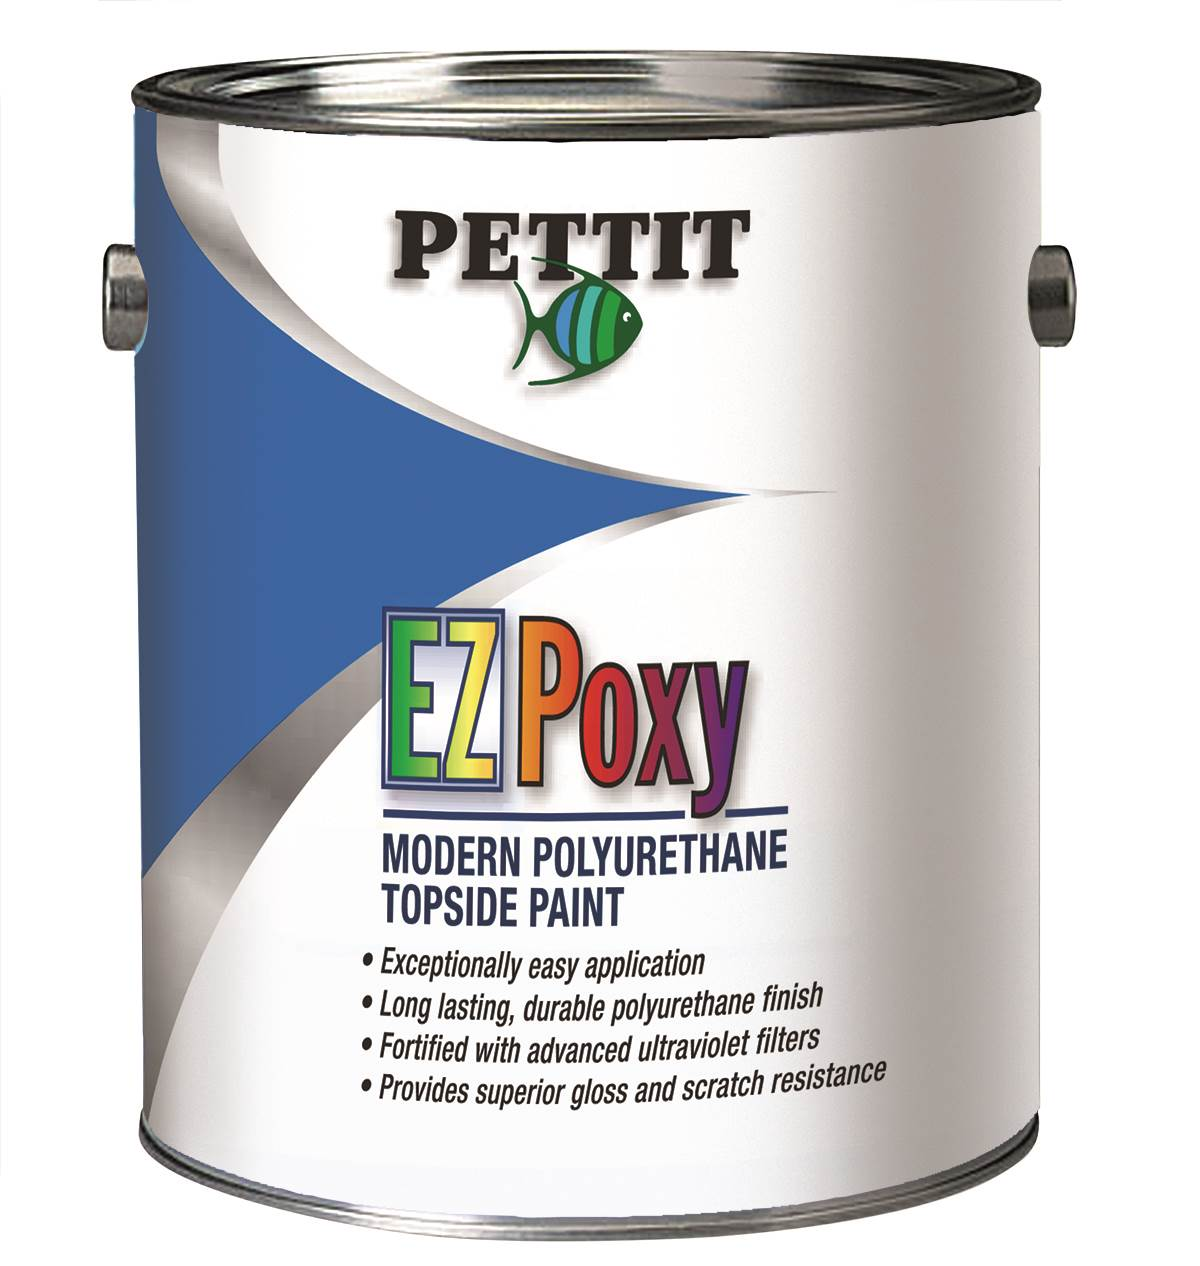 Pettit EZ-Poxy formerly Easypoxy Topside Paint